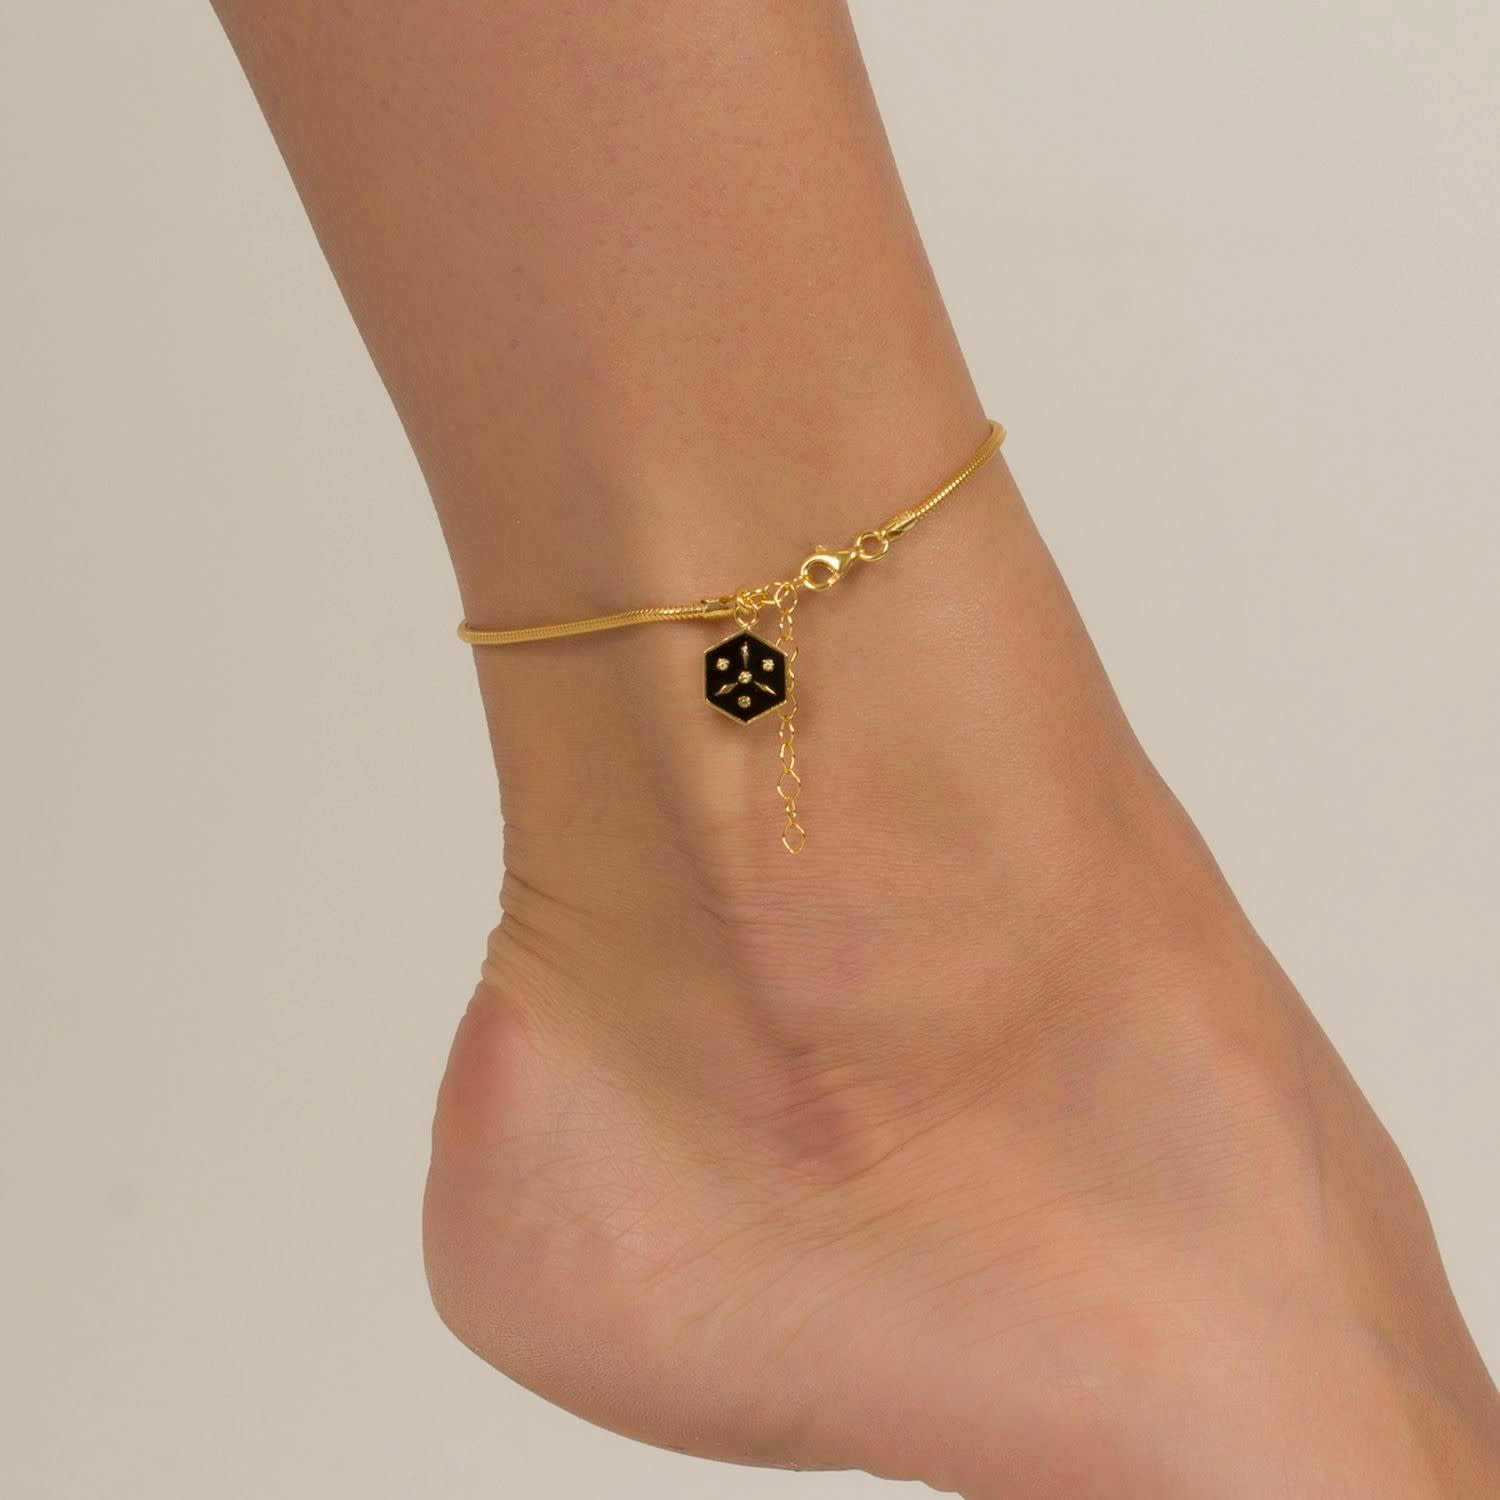 bracelet anklet plated chain silver gold sterling sizes vermeil all necklace link with heart